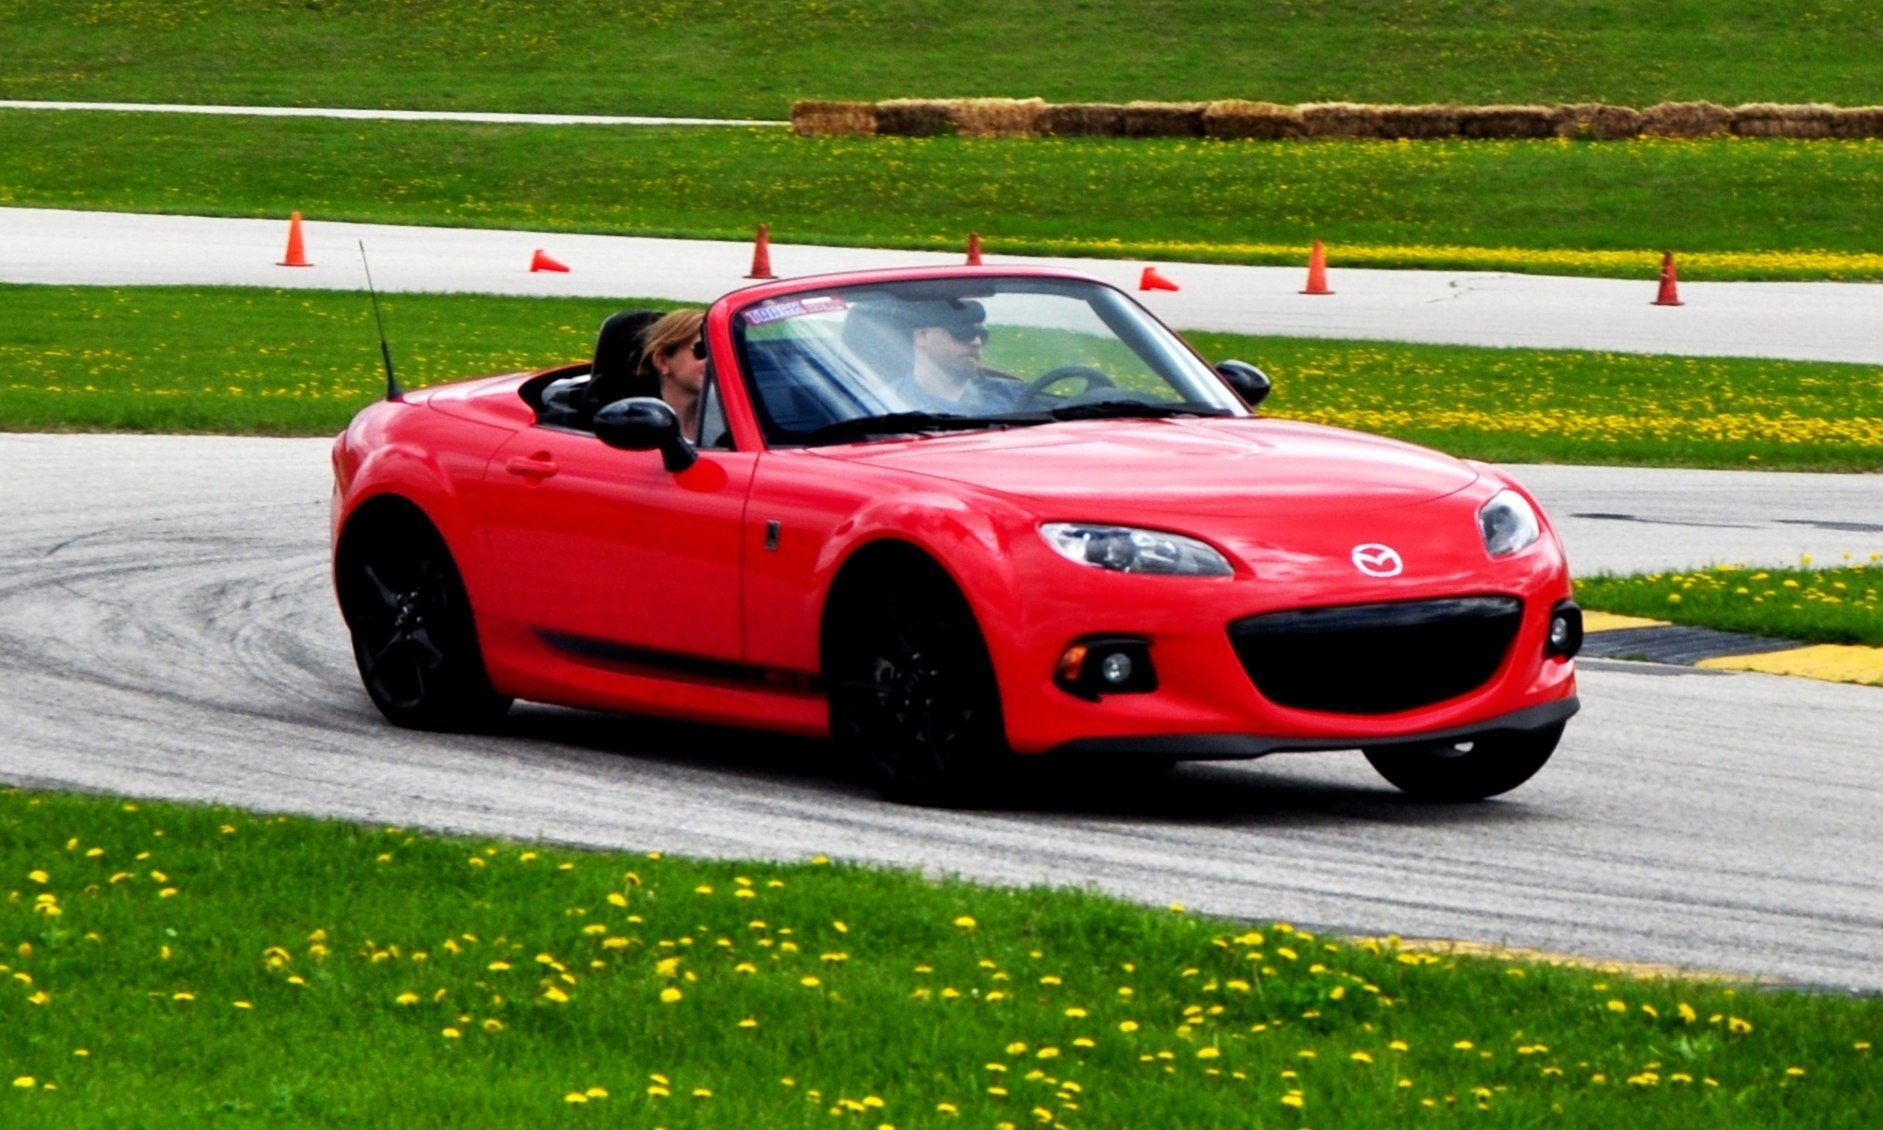 track test review 2014 mazda mx 5 club hardtop at road america autocross. Black Bedroom Furniture Sets. Home Design Ideas